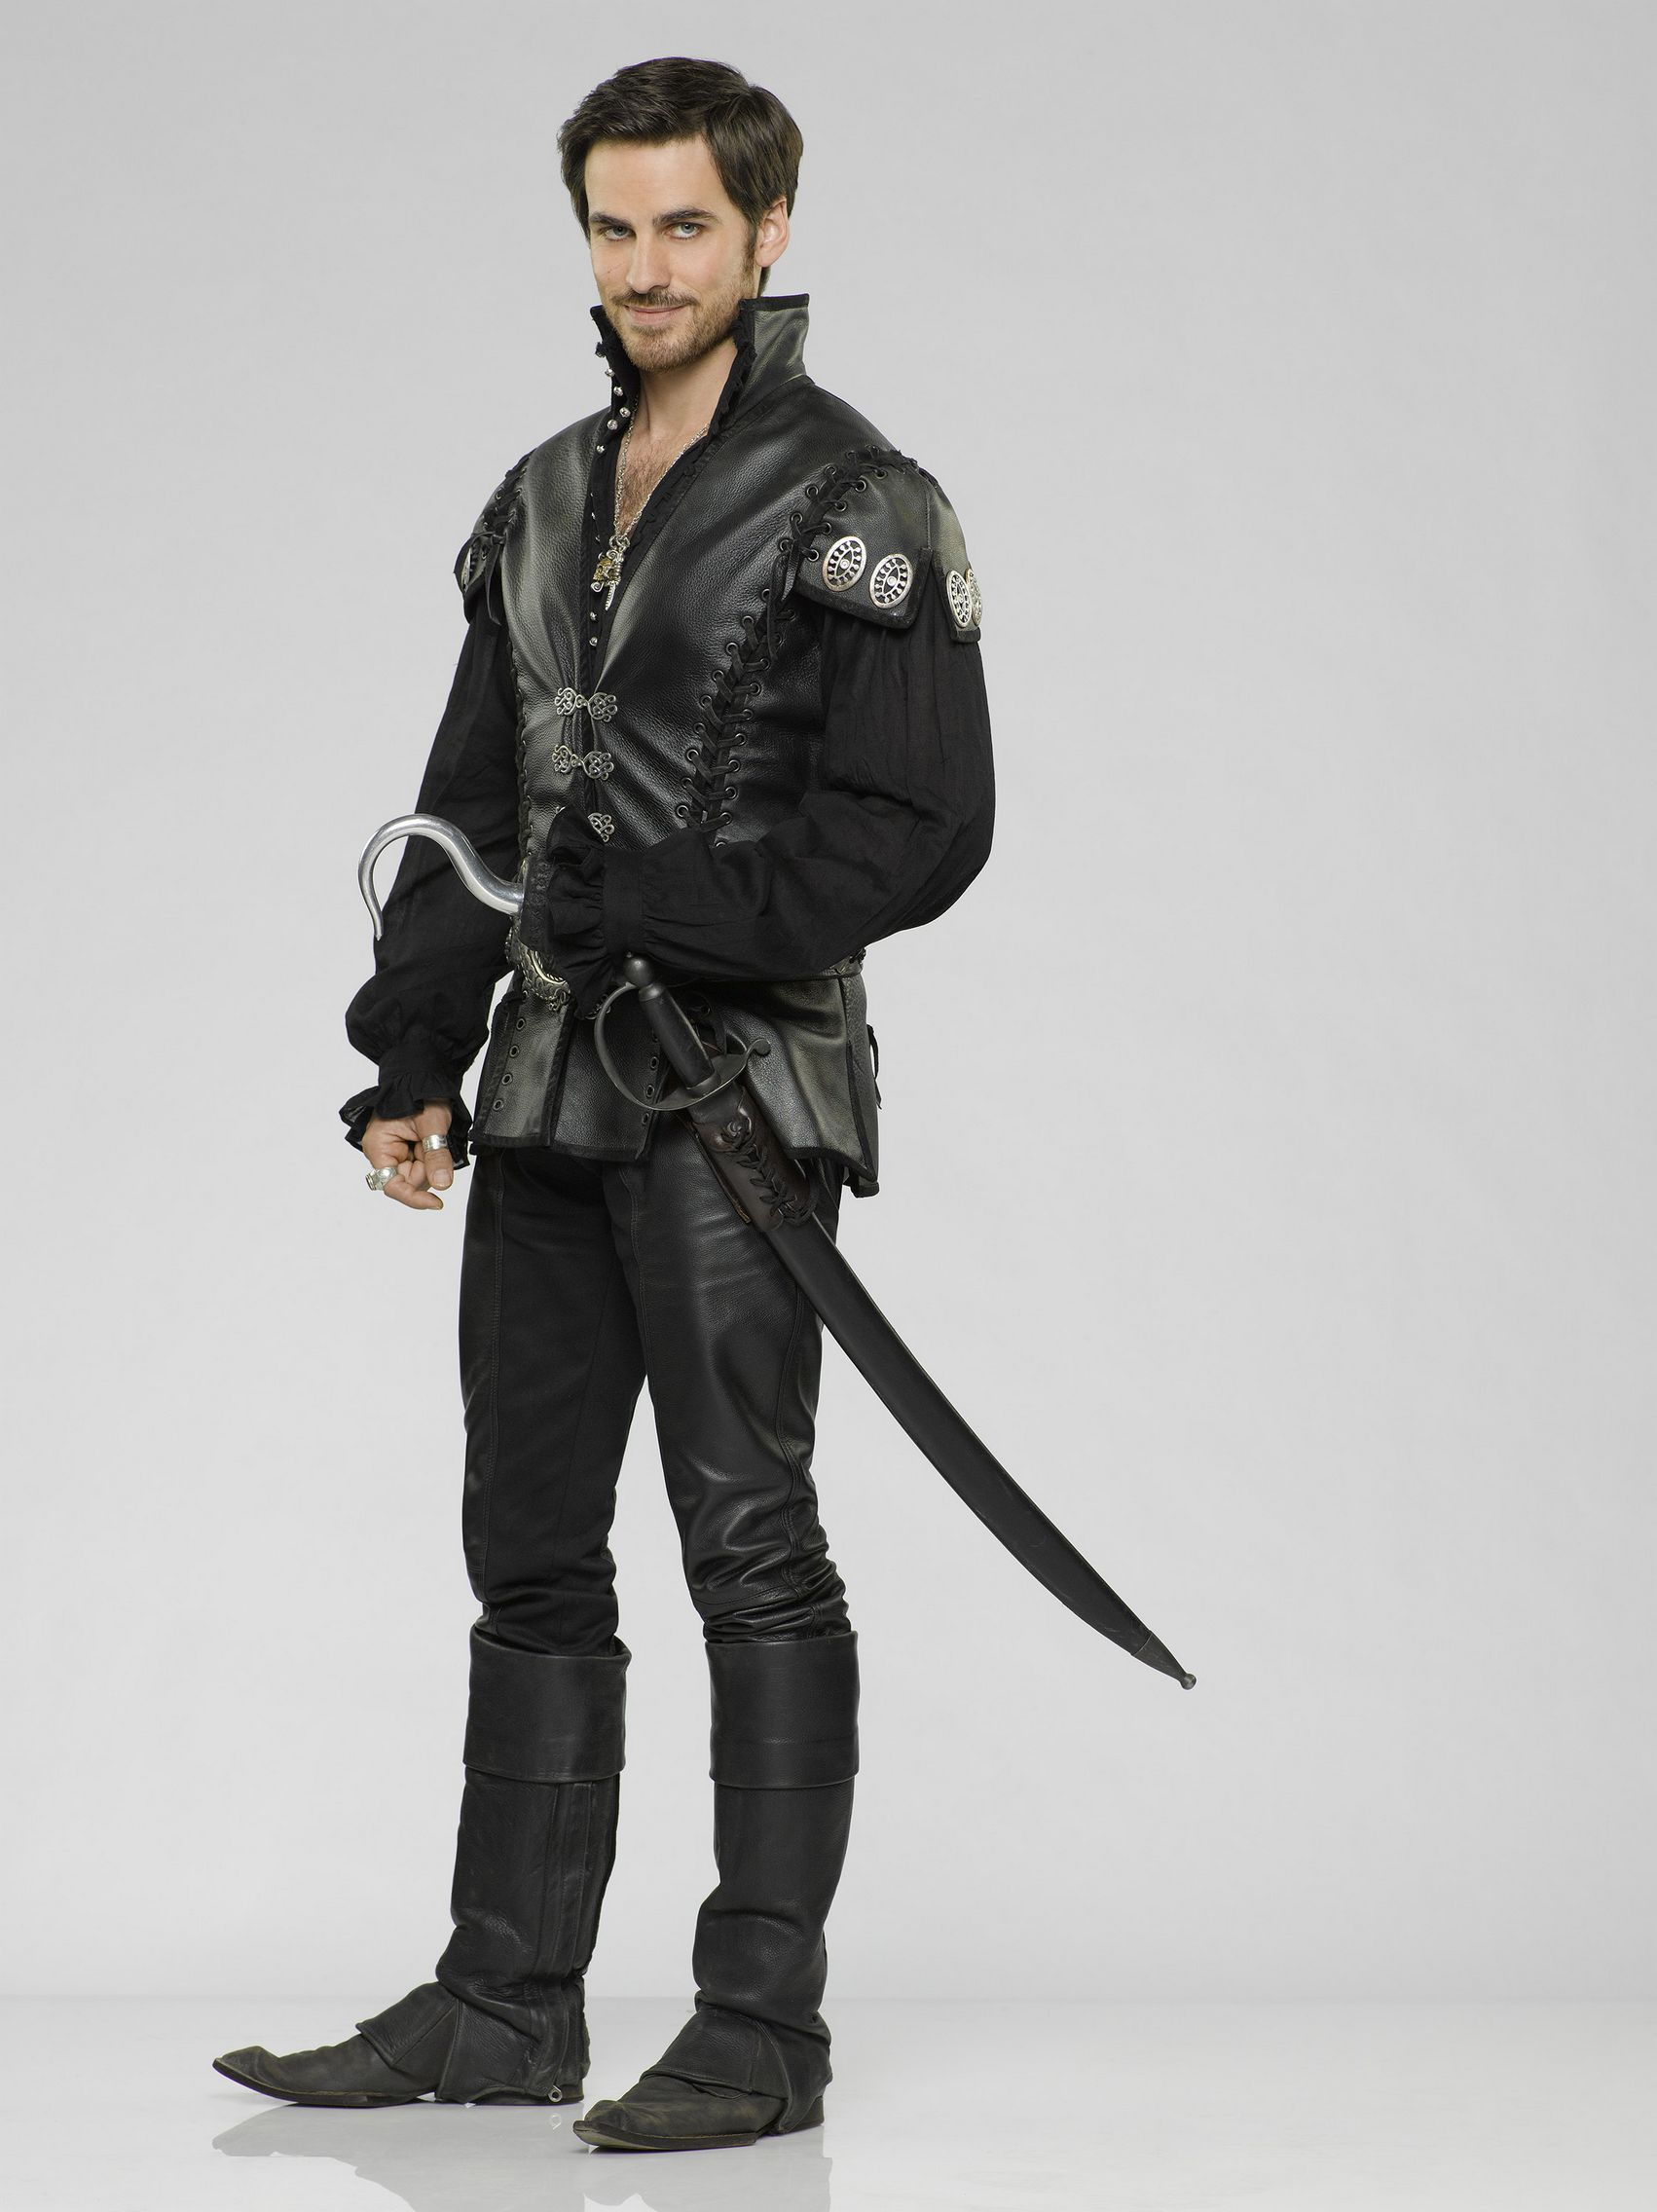 capitaine crochet captain hook killian jones colin o 39 donoghue once upon a time cosplay. Black Bedroom Furniture Sets. Home Design Ideas